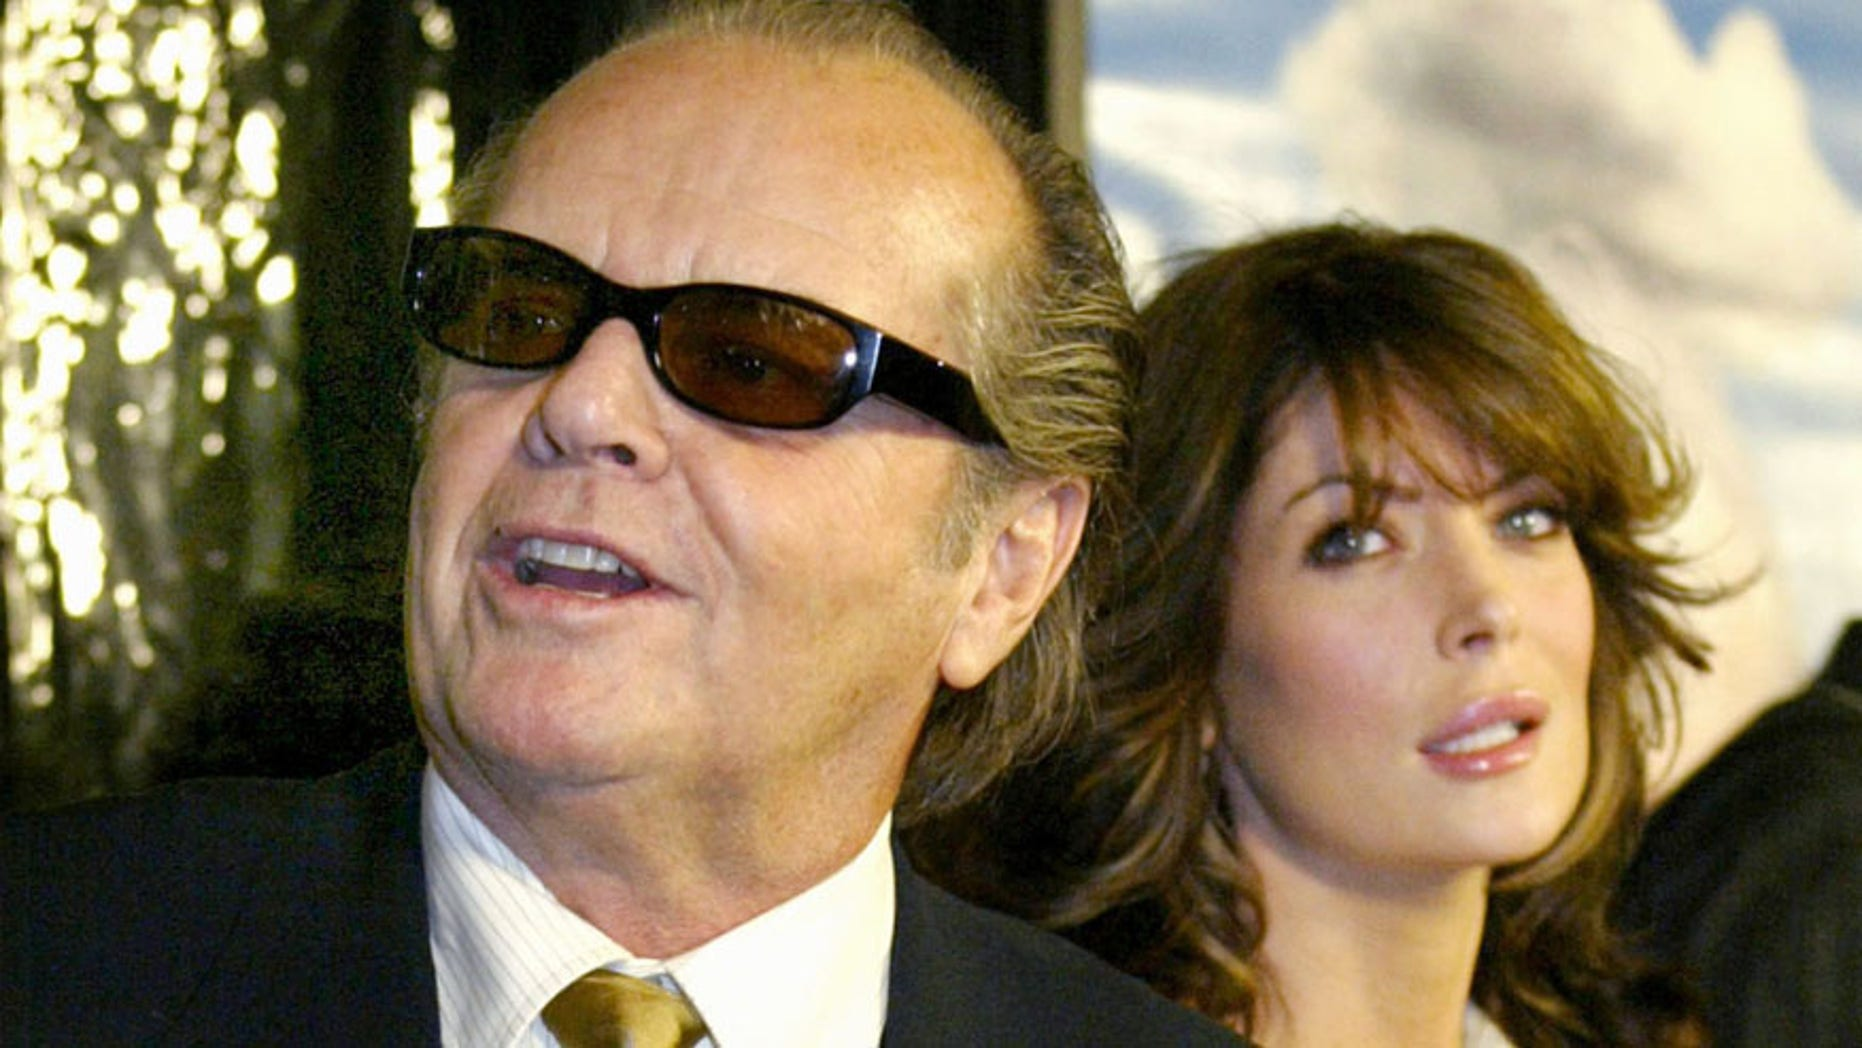 """Three-time Academy Award winning actor Jack Nicholson arrives with LaraFlynn Boyle for the Los Angeles premiere of the film """"About Schmidt,""""December 12, 2002 in Beverly Hills, California. Nicholson stars as a man whohas reached life's crossroads and is searching for something meaningful inhis life.   PP03110050   REUTERS/Robert GalbraithRG - RTRFBGF"""